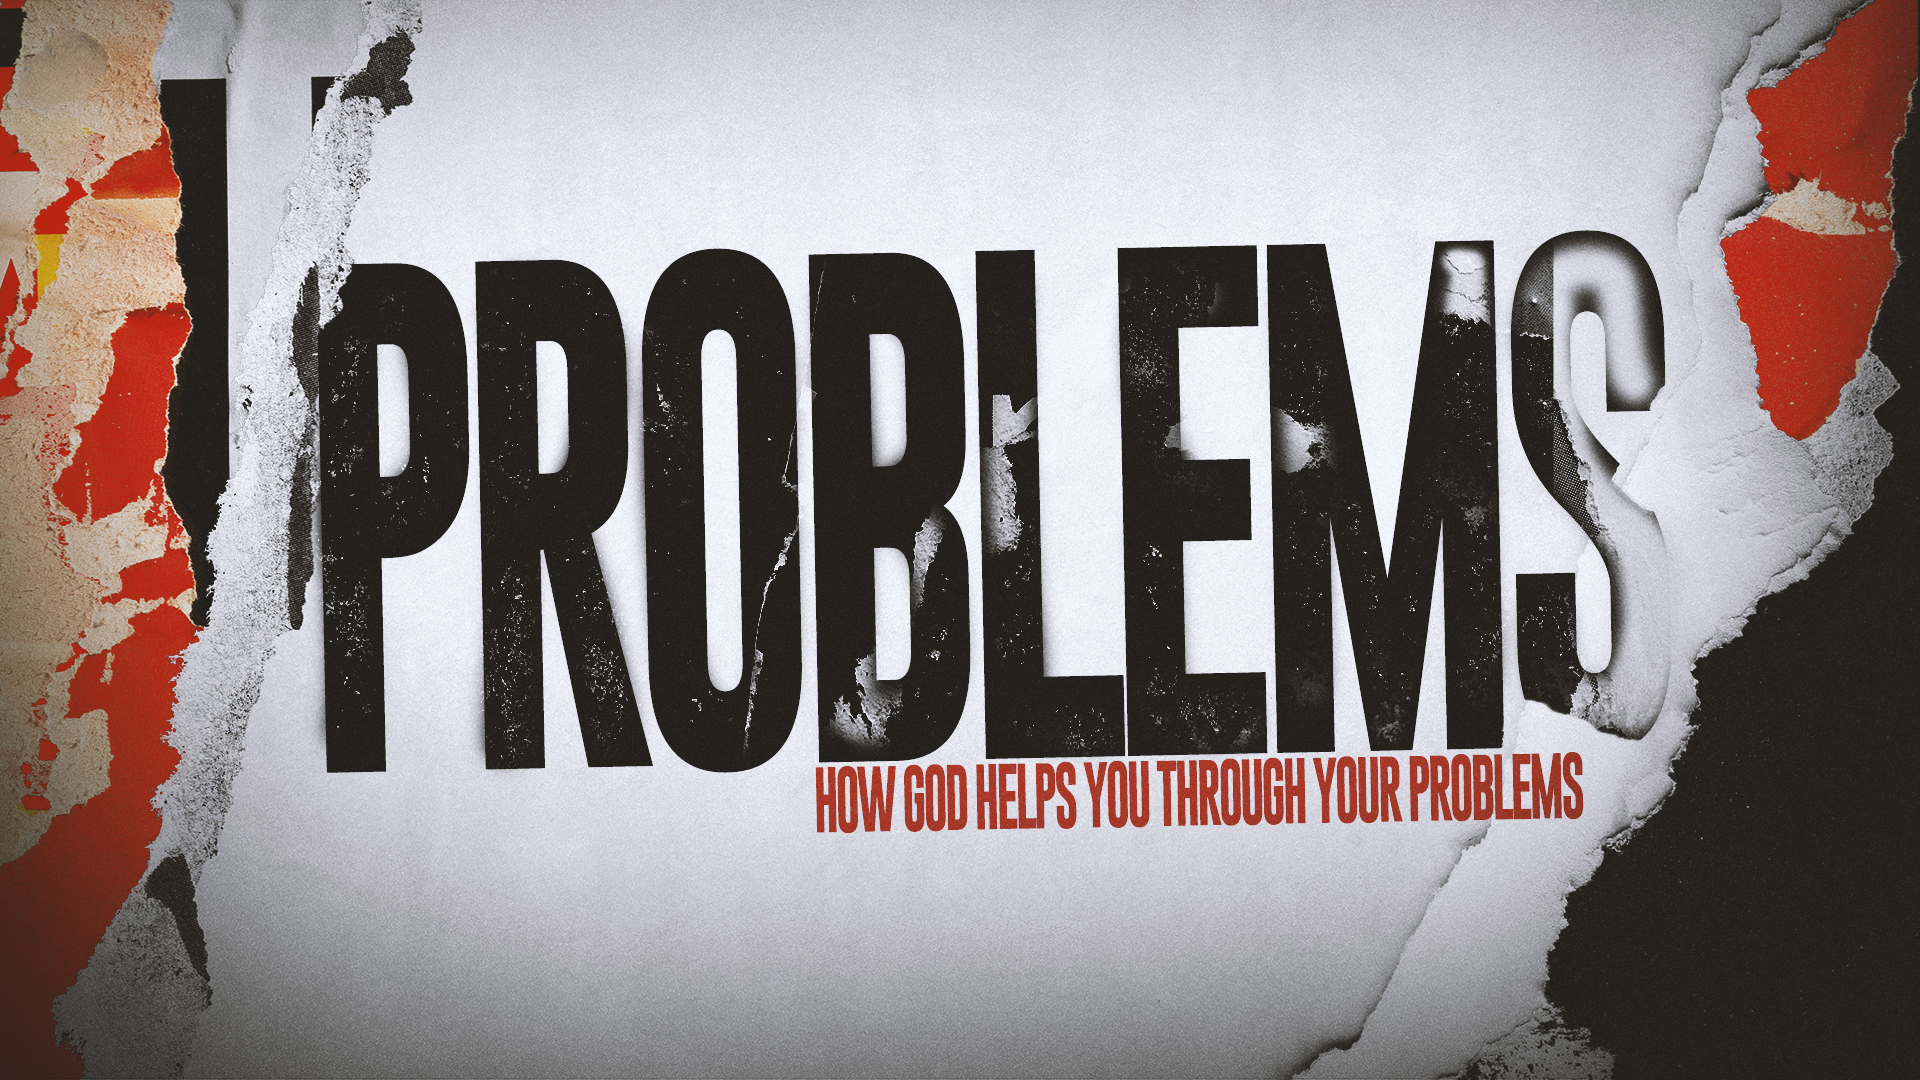 Problems - How to Keep My Problems in Perspective